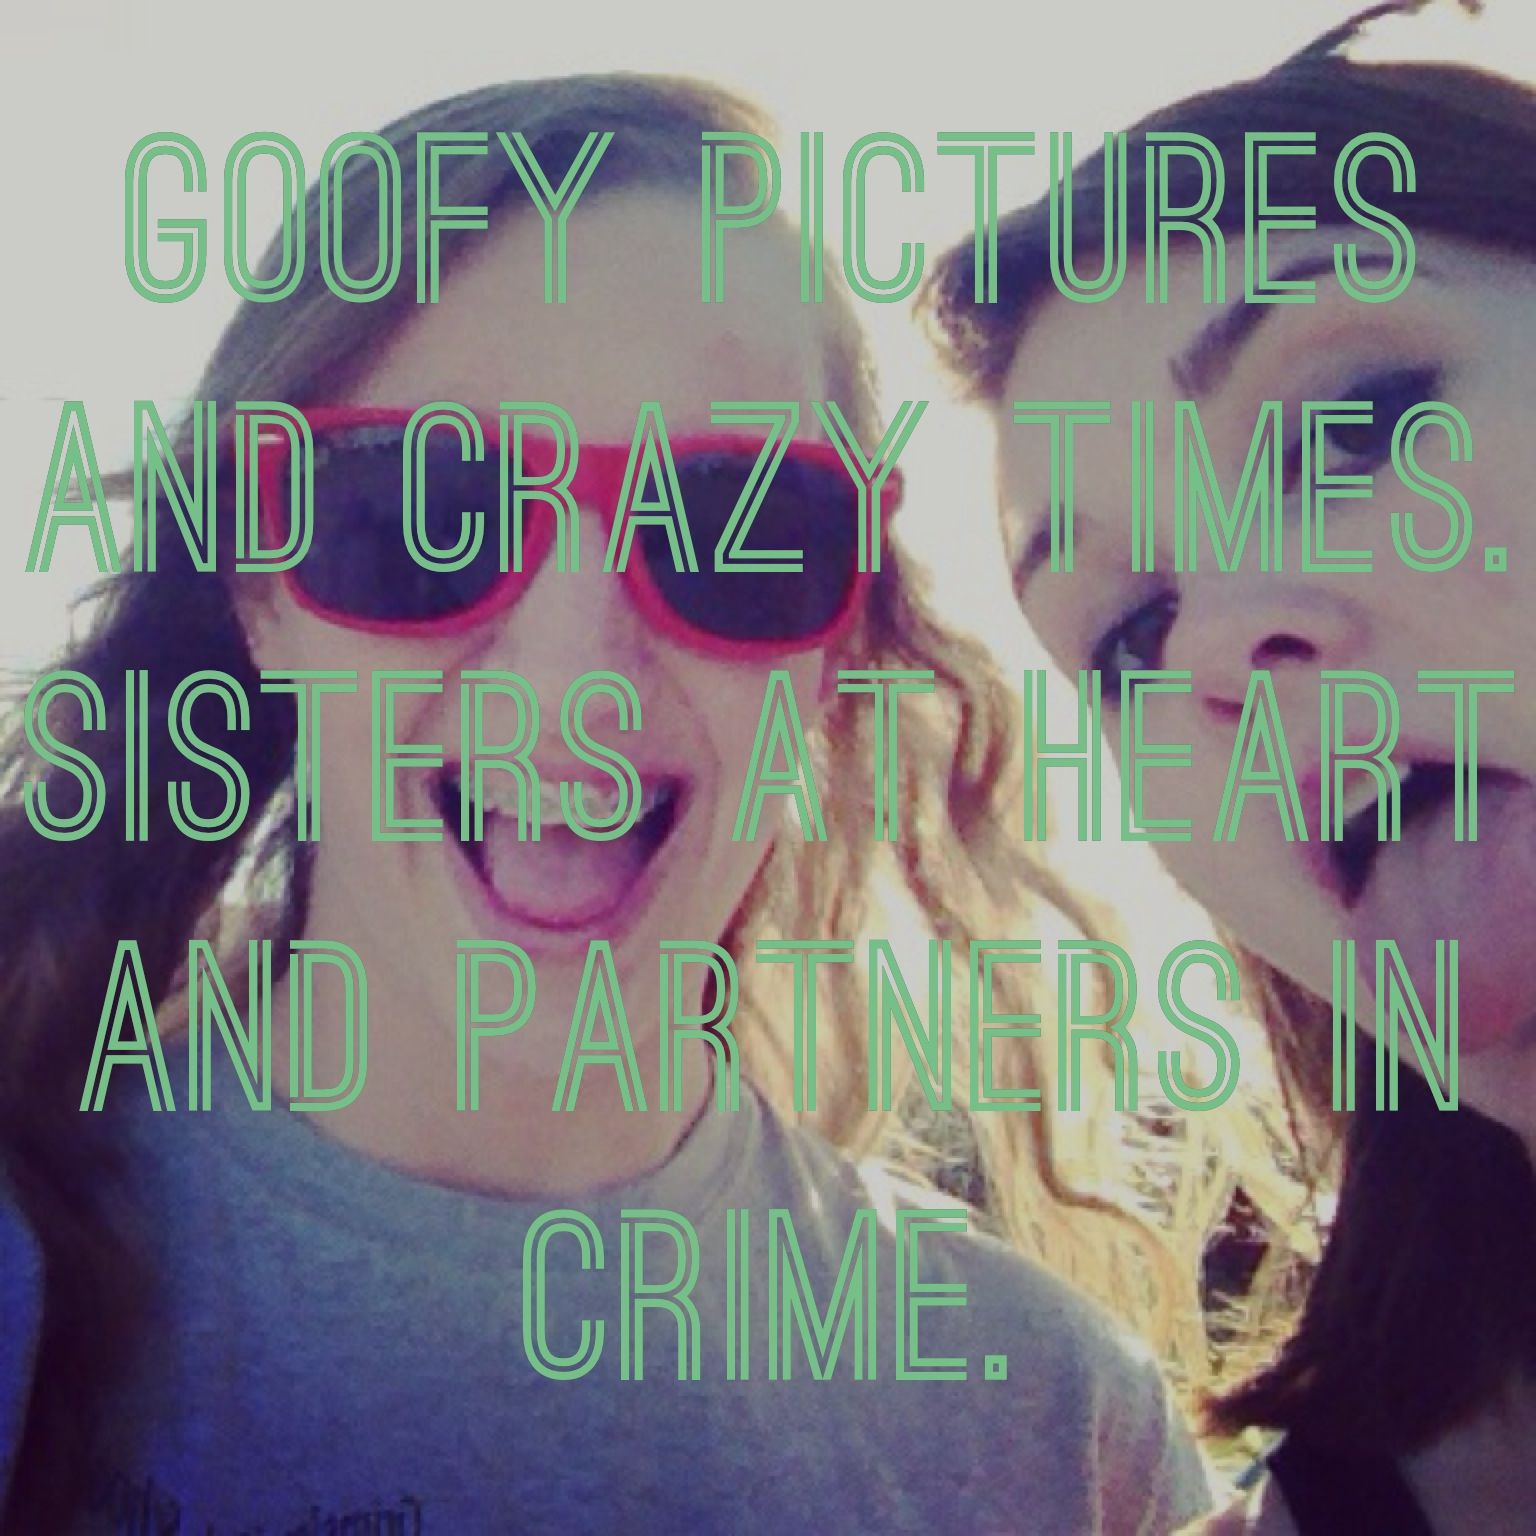 Birthday Wishes For Best Friend Quotes Tumblr: Goofy Pictures And Crazy Times. Sisters At Heart As